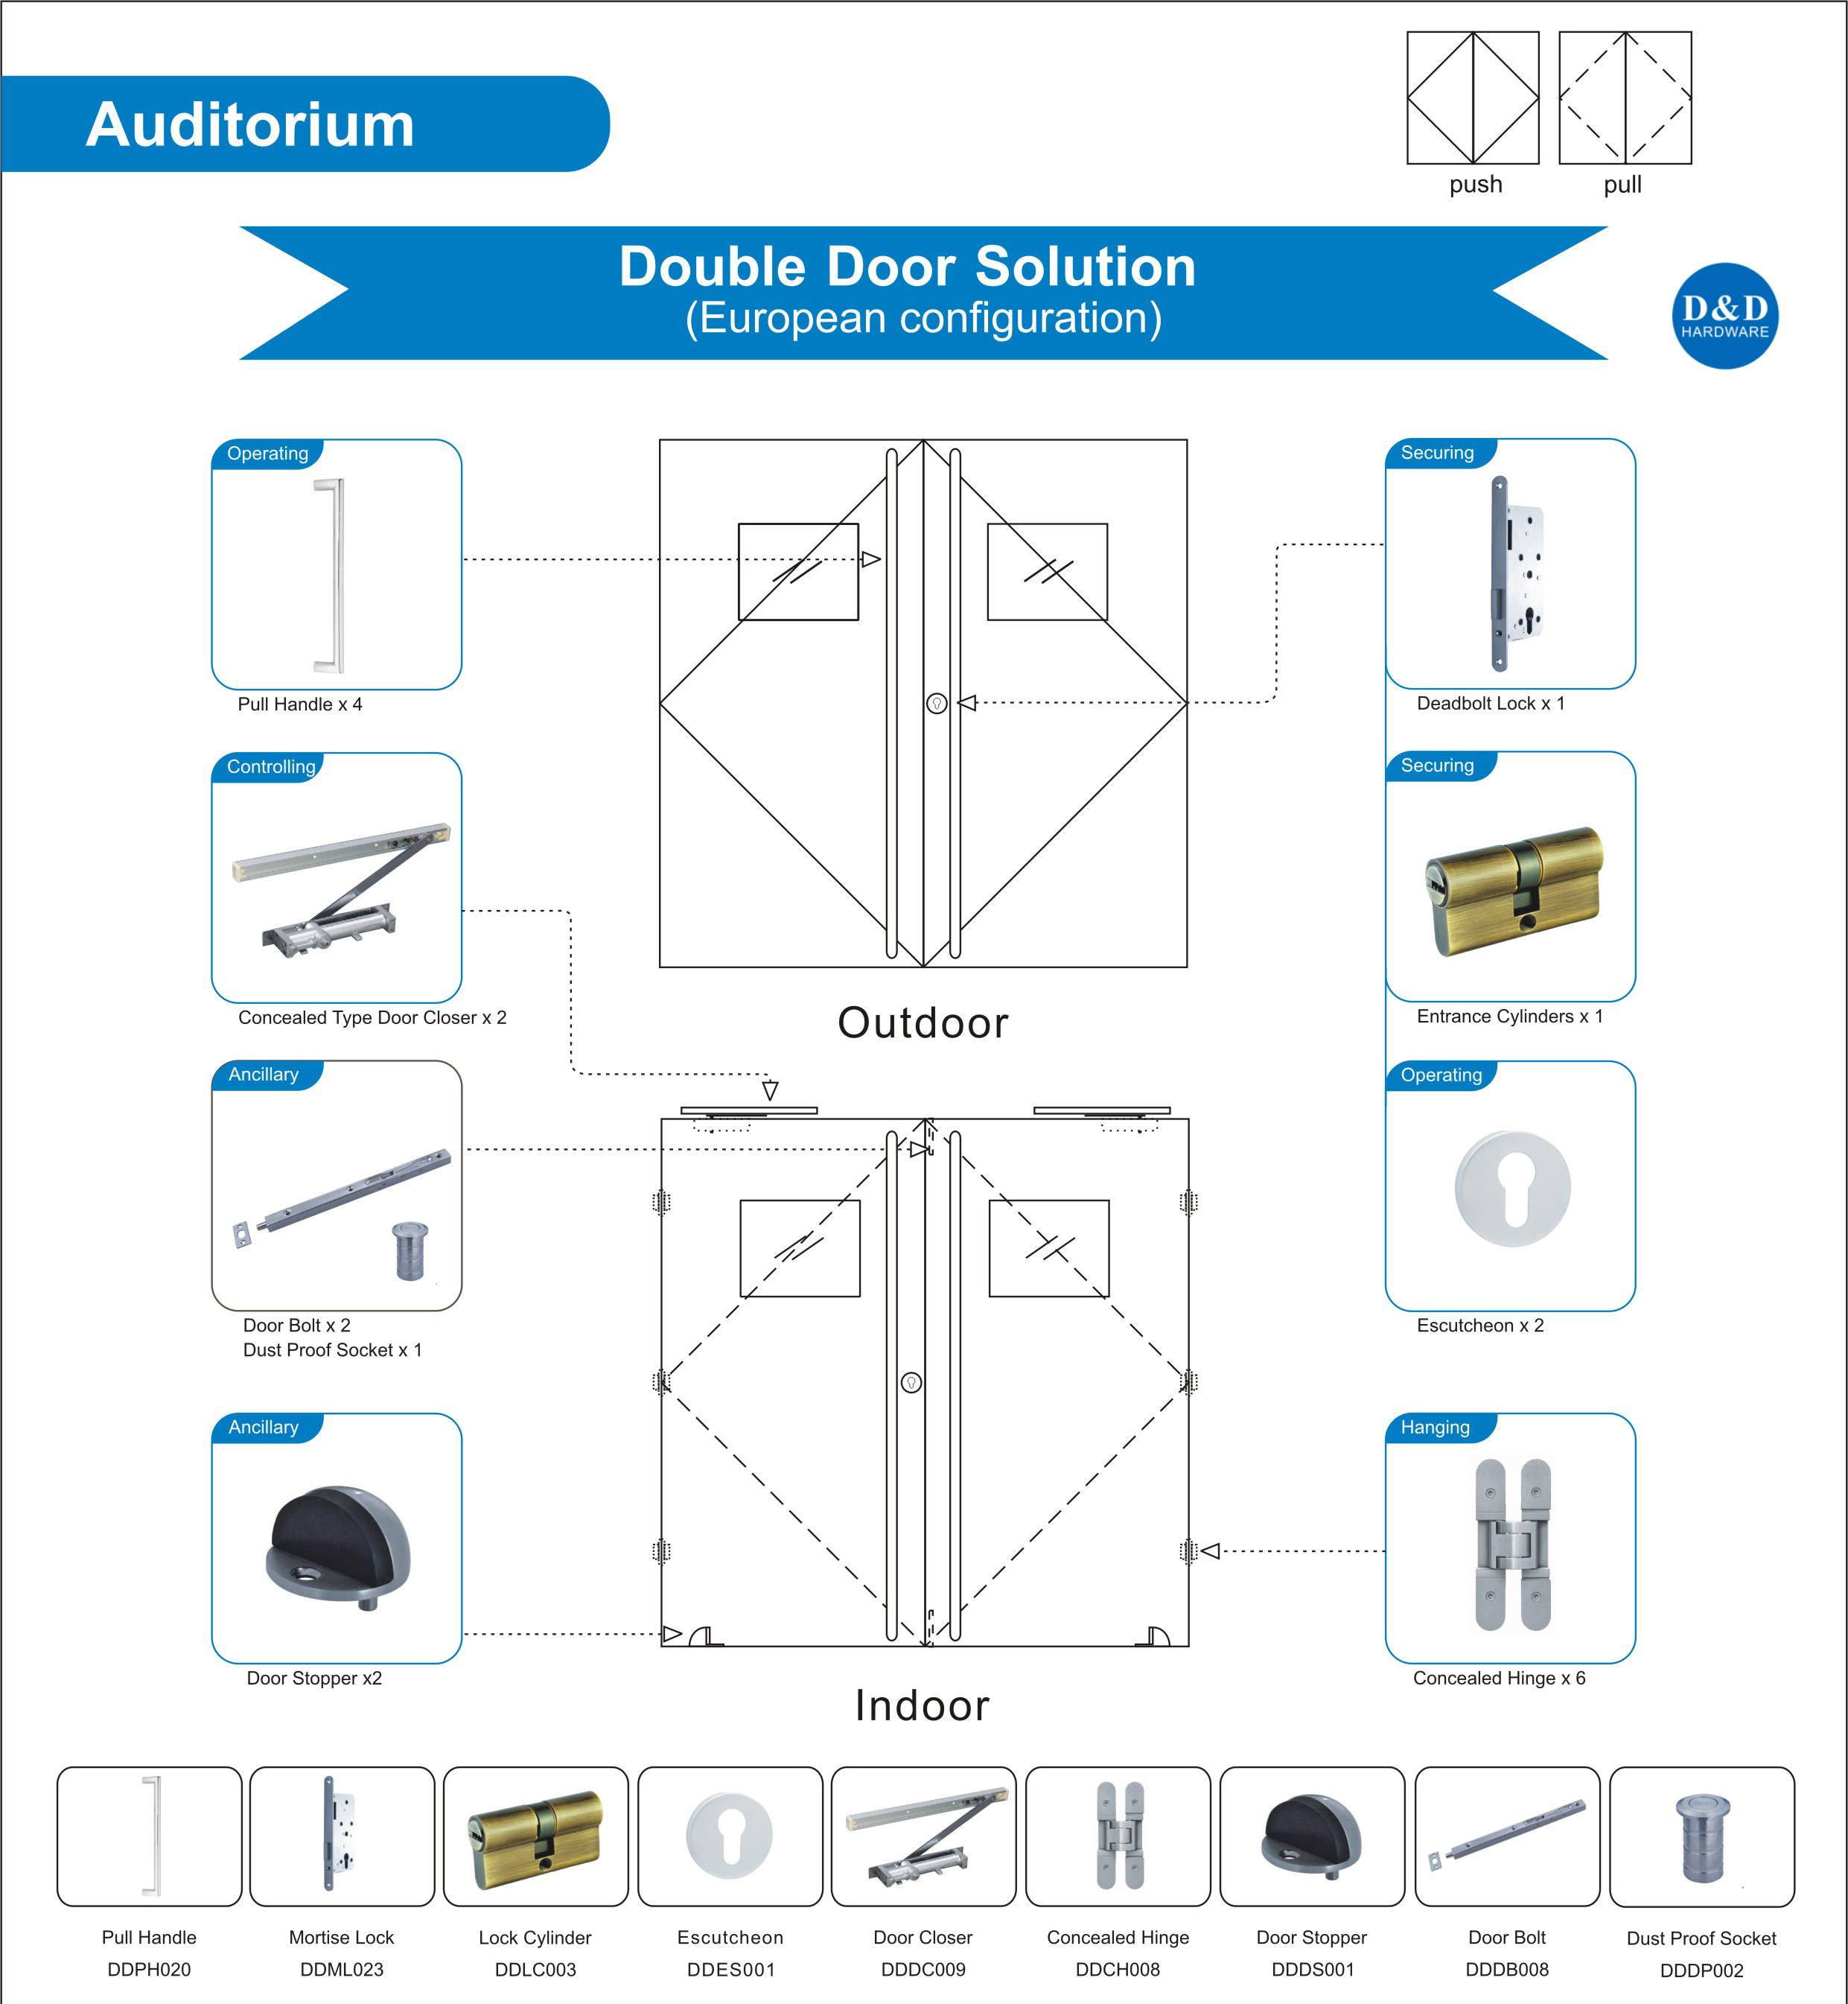 Useful Wooden Door Hardware Solution for Auditorium Double Door